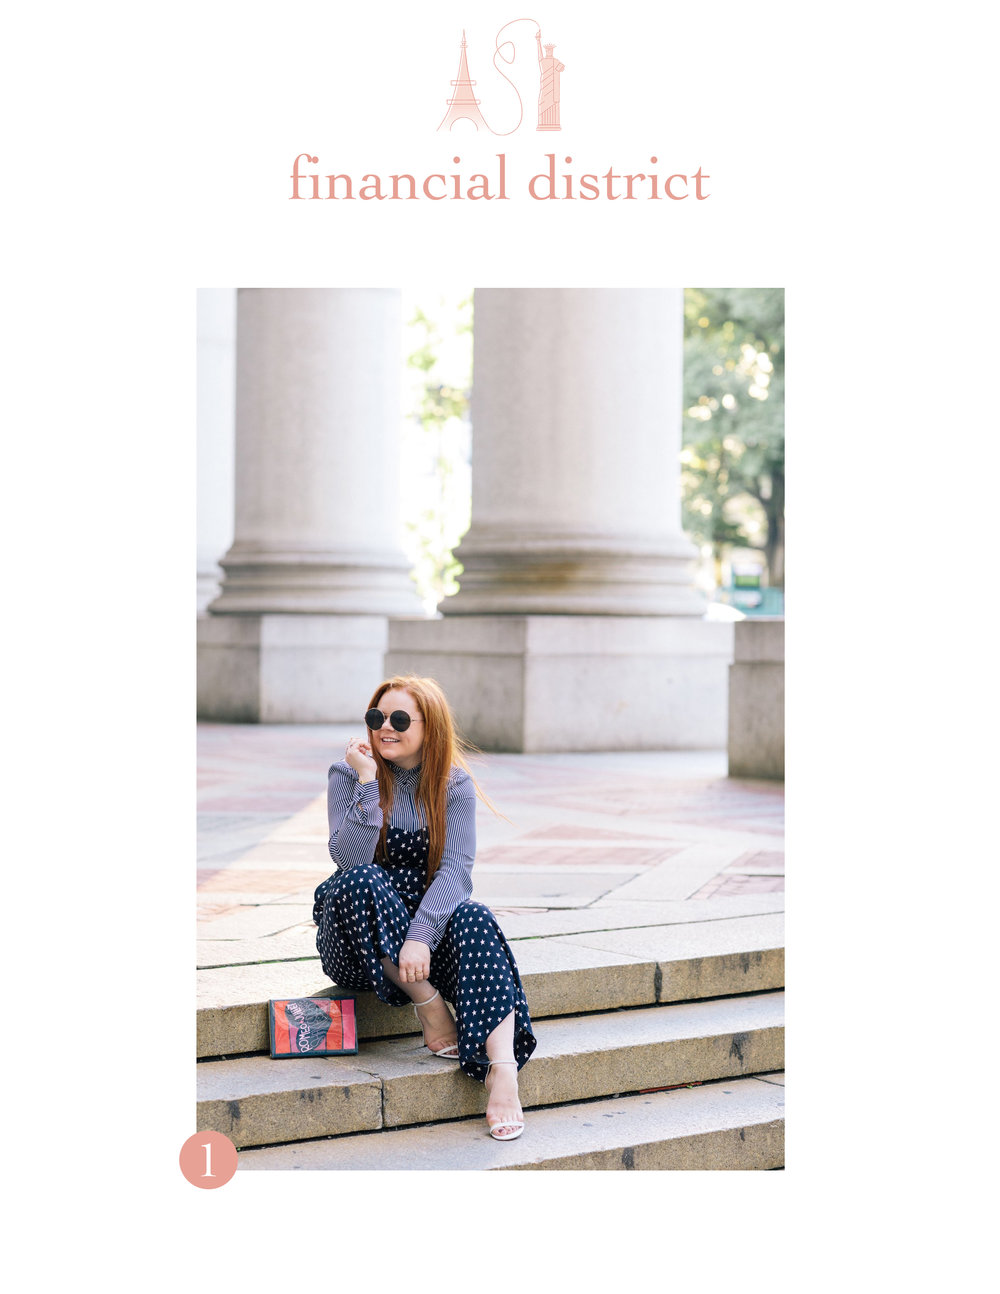 financial_district_photo_locations.jpg